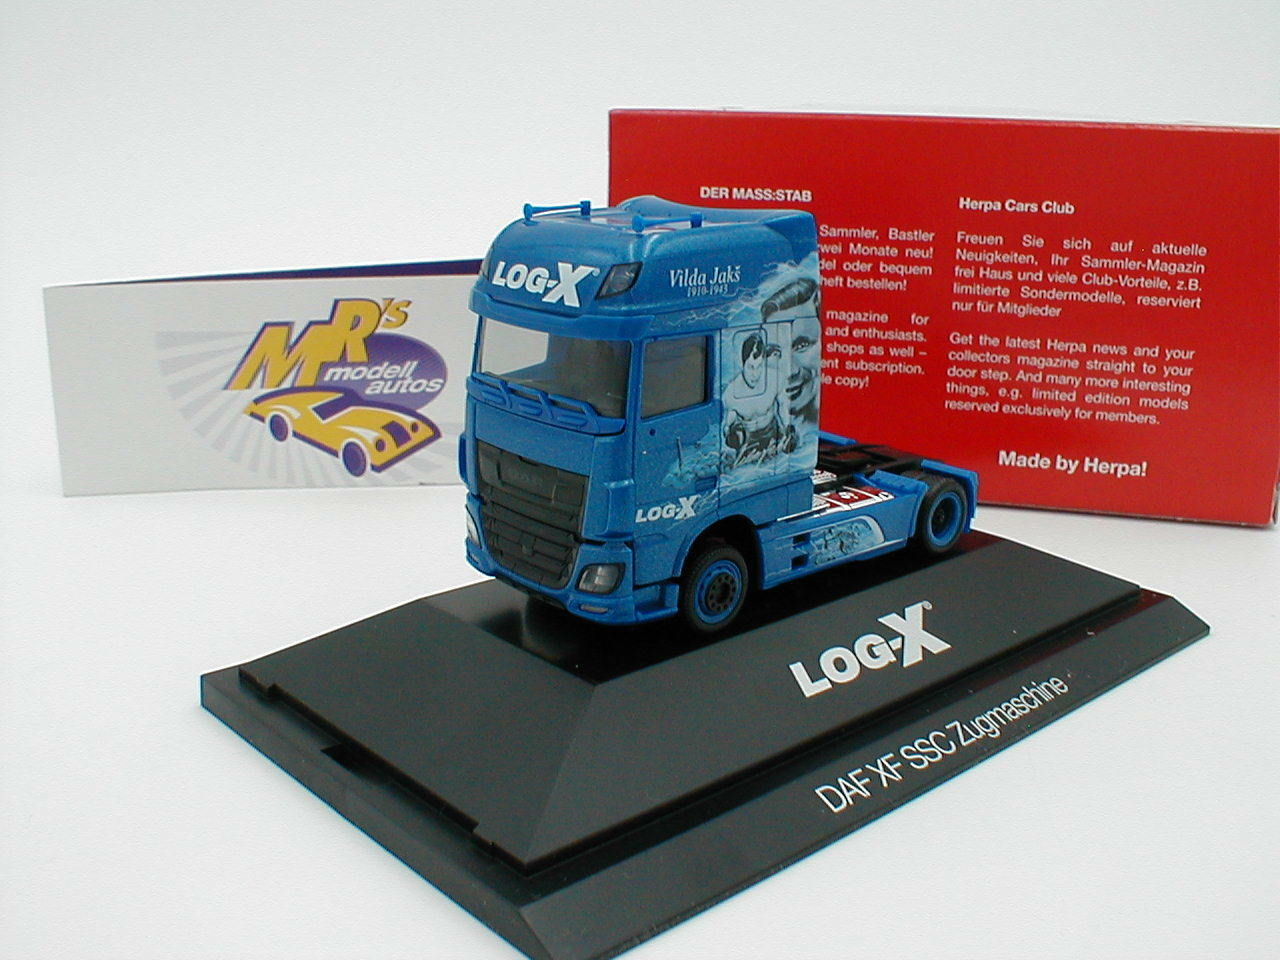 Herpa 110952 DAF XF SSC TRACTOR  Log-x The Boxer  1 87 Novelty